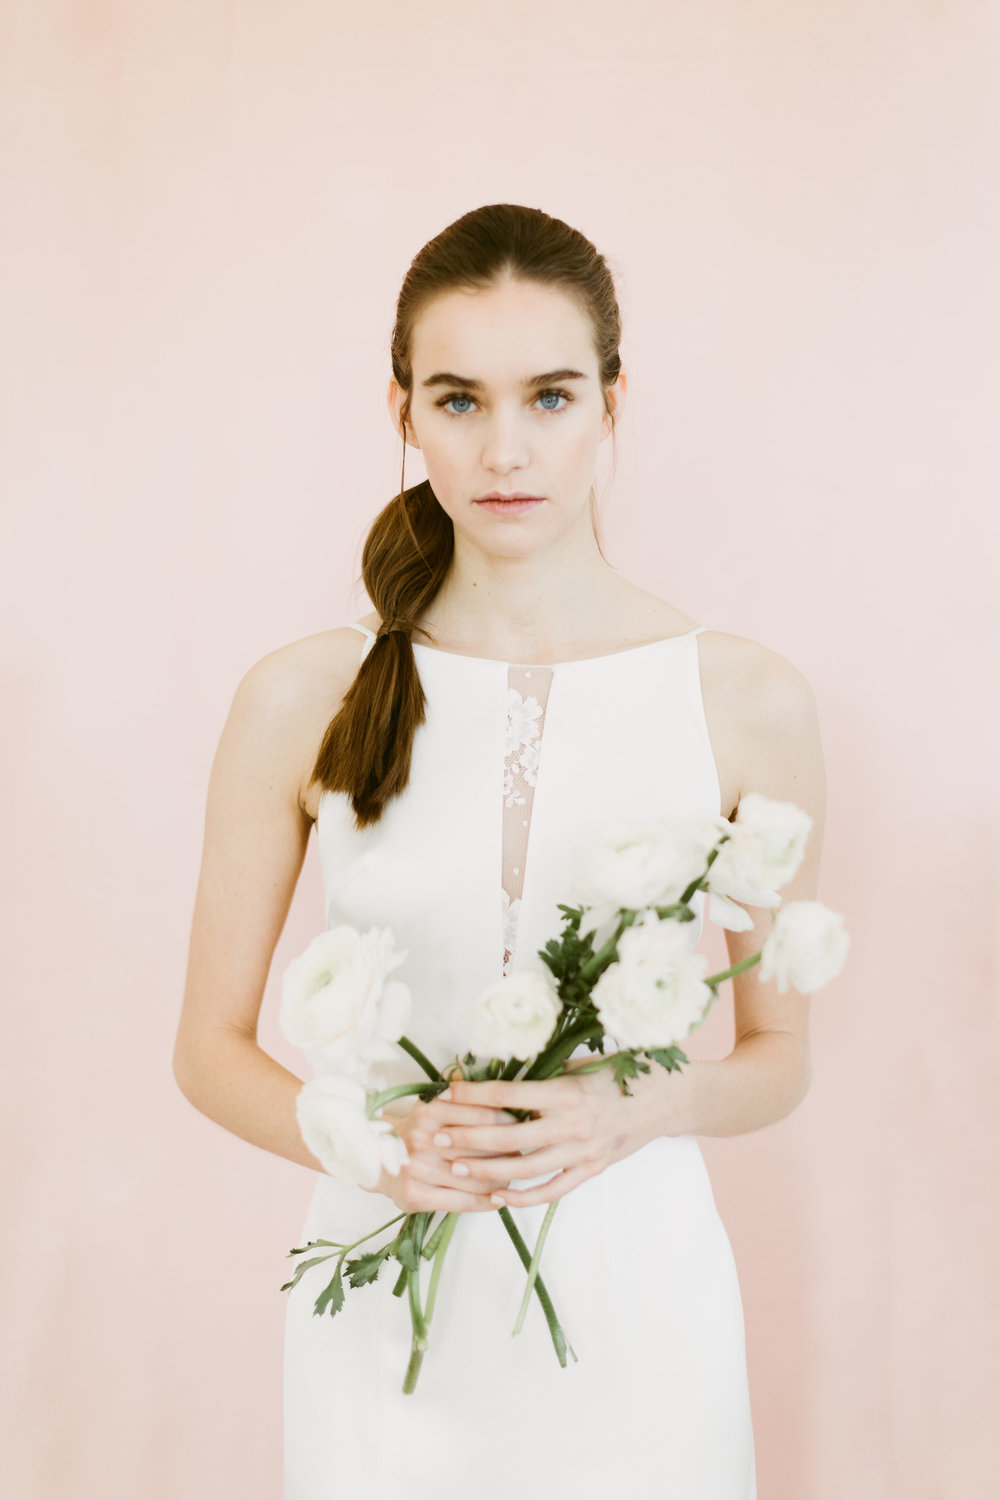 book an appointment .we take the term refreshing bridal experience seriously. think you and your dearest, sipping champs,surrounded by laid back and open minded vibes, trying on modern dresses all the while having a jam sesh and celebrating you. -